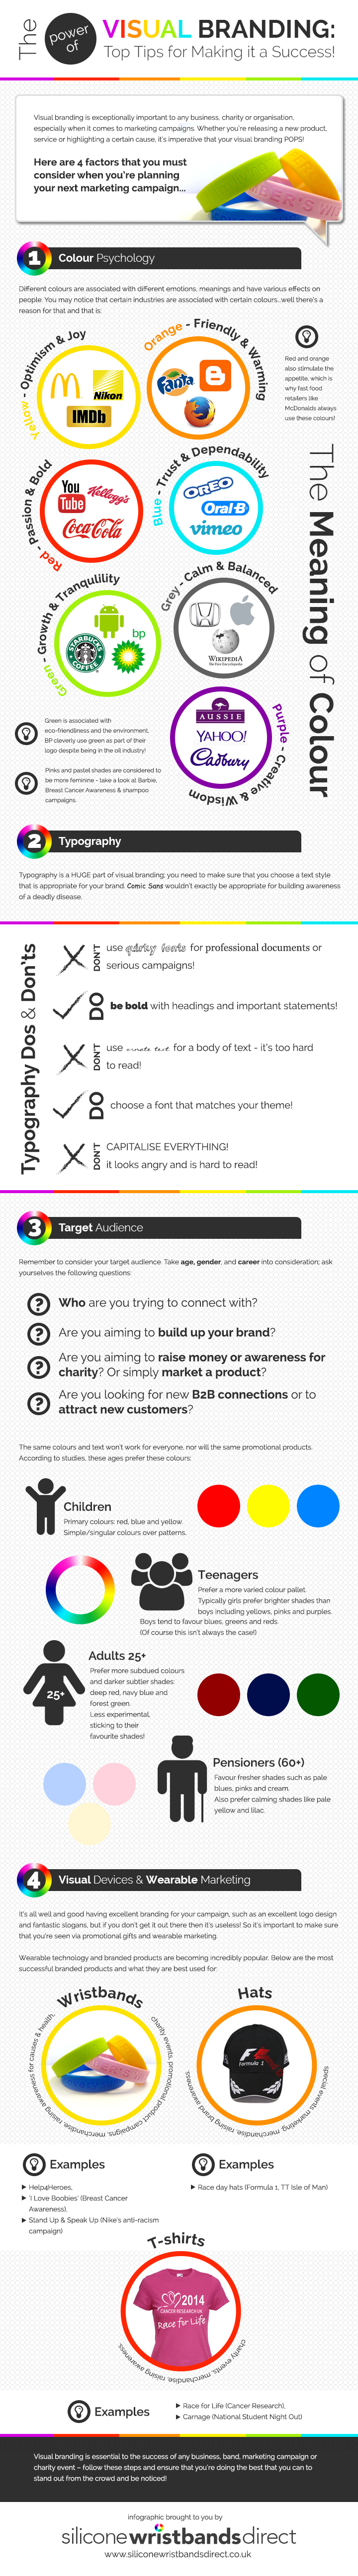 The Power of Visual Branding infographic